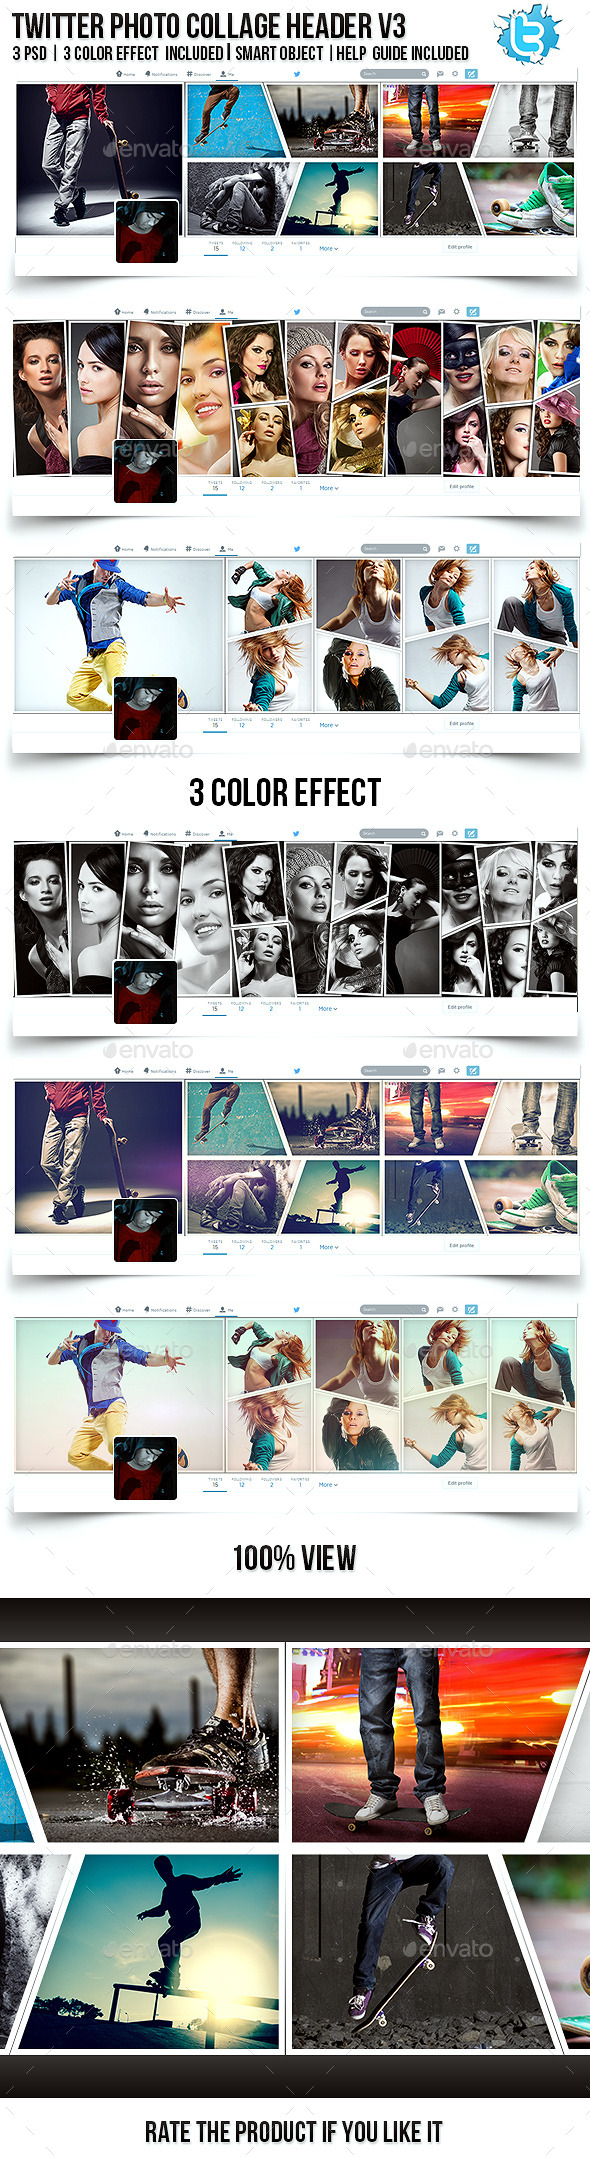 GraphicRiver Twitter Photo Collage Header V3 11334100